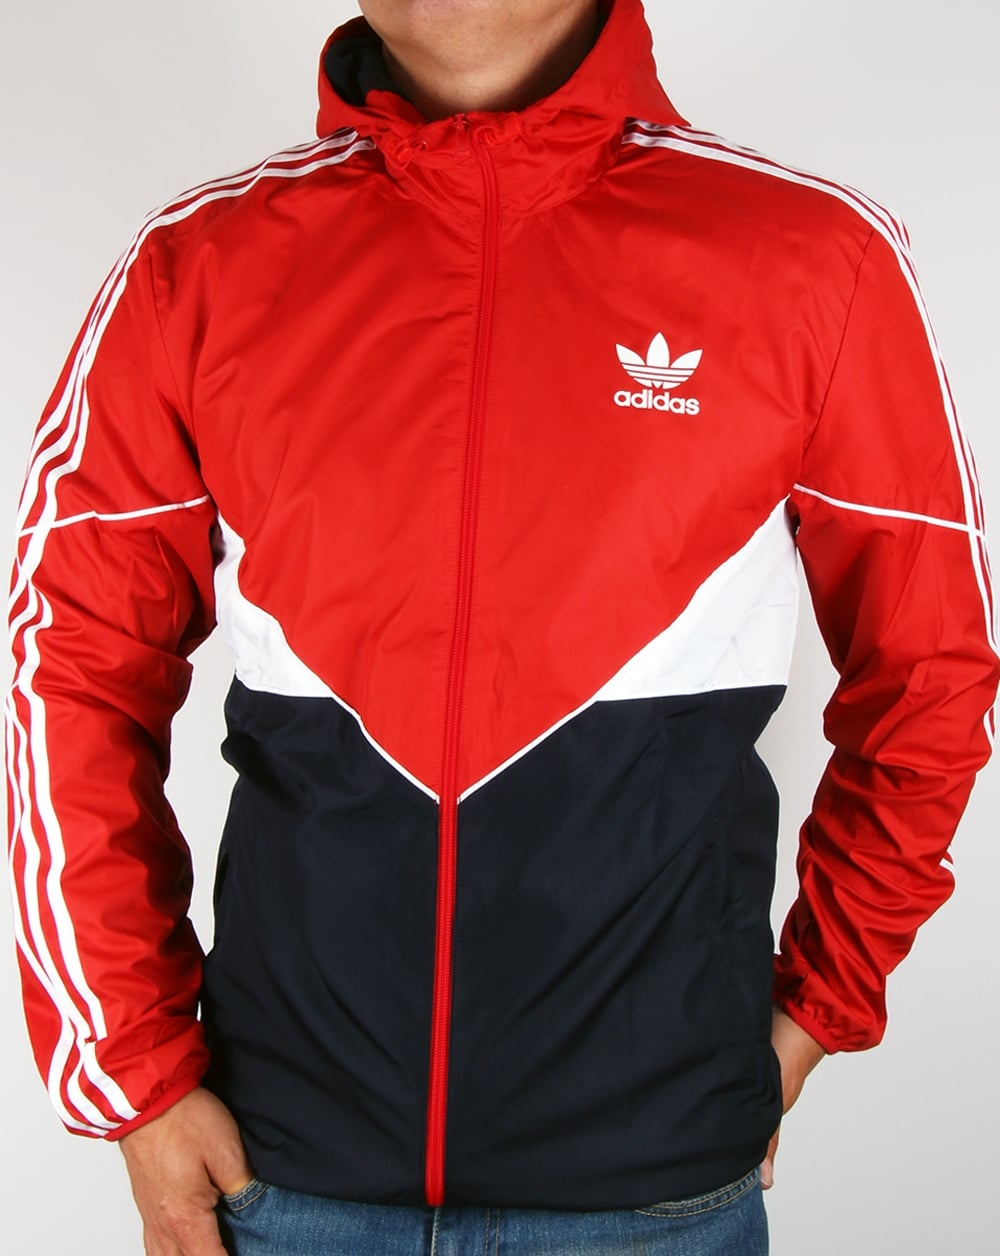 adidas originals colorado windbreaker red navy jacket coat. Black Bedroom Furniture Sets. Home Design Ideas